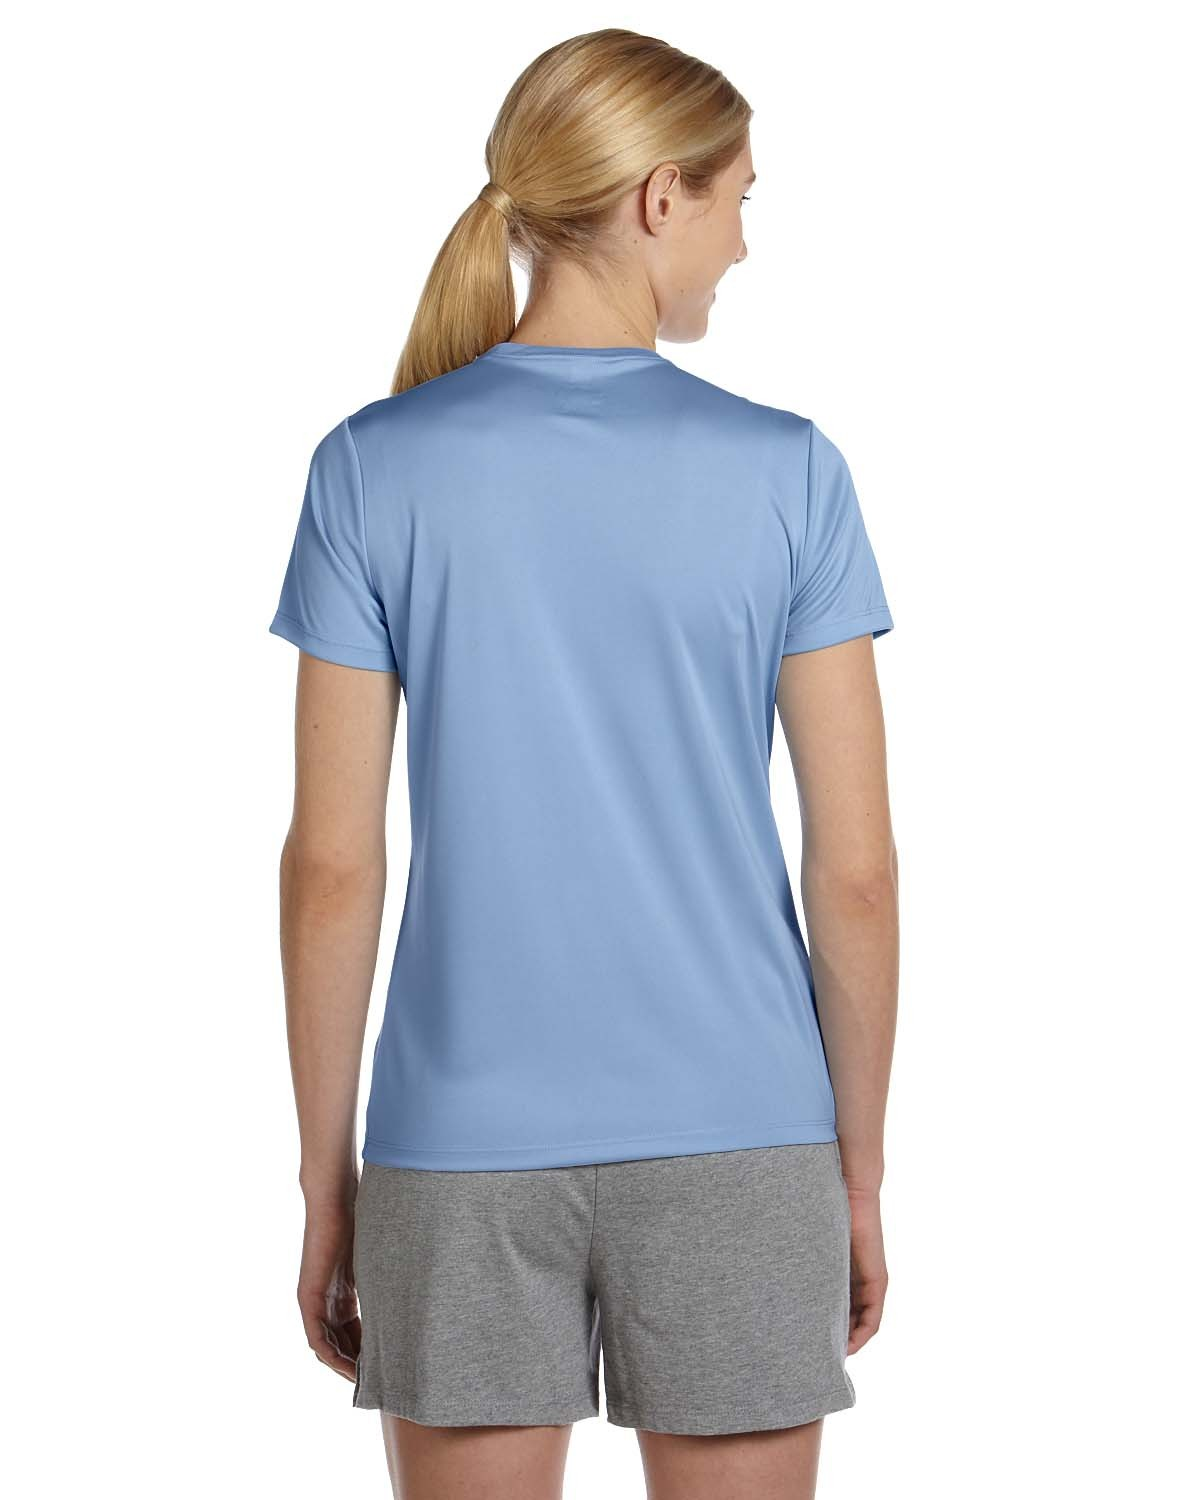 4830 Hanes LIGHT BLUE